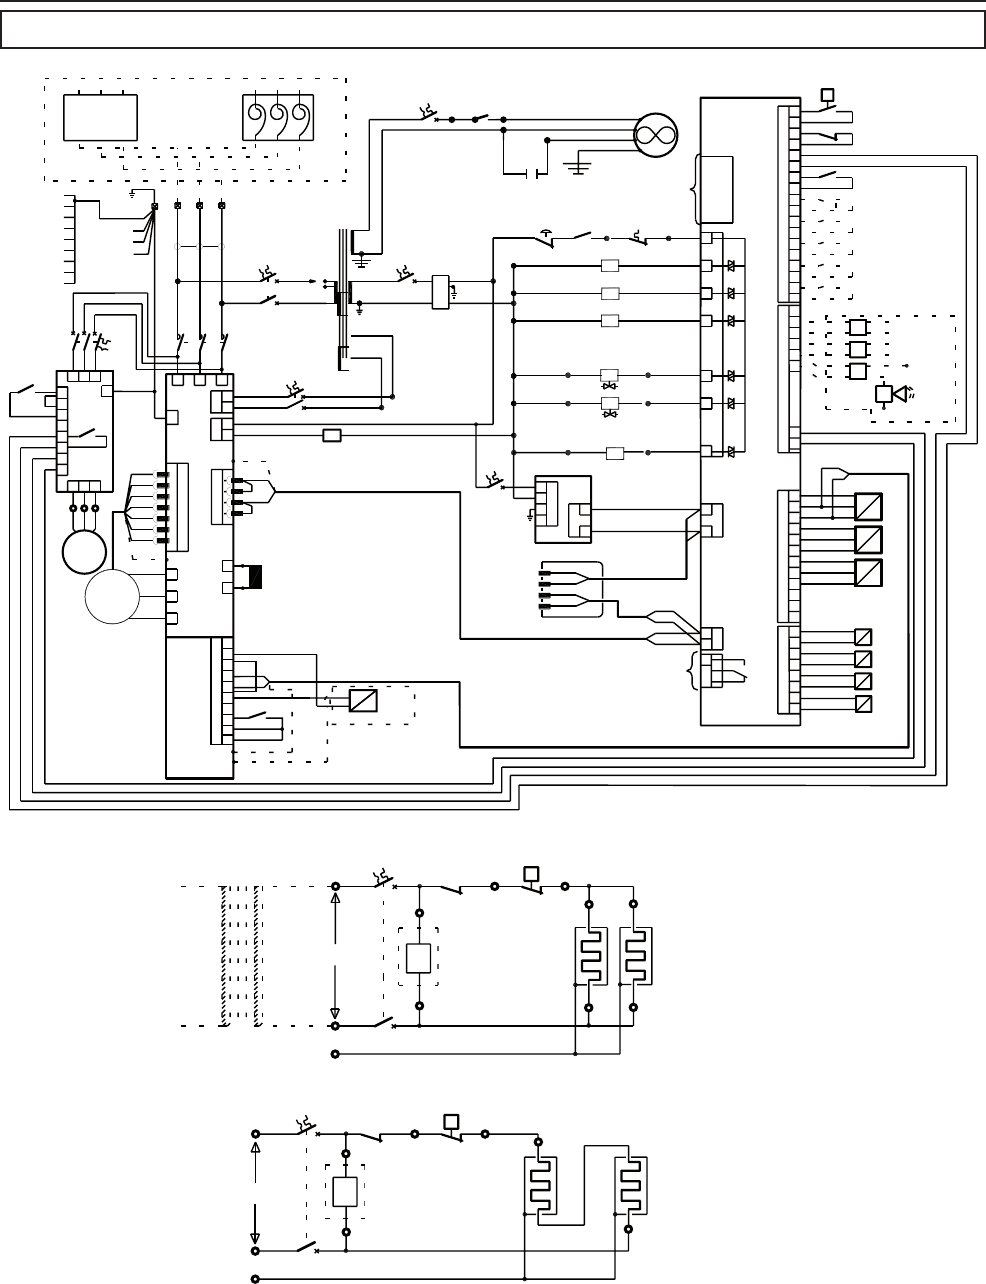 Ingersoll Rand Air Compressor Wiring Diagram - Ingersoll Rand Air Pressor Wiring  Diagram Elegant Beautiful Pressor